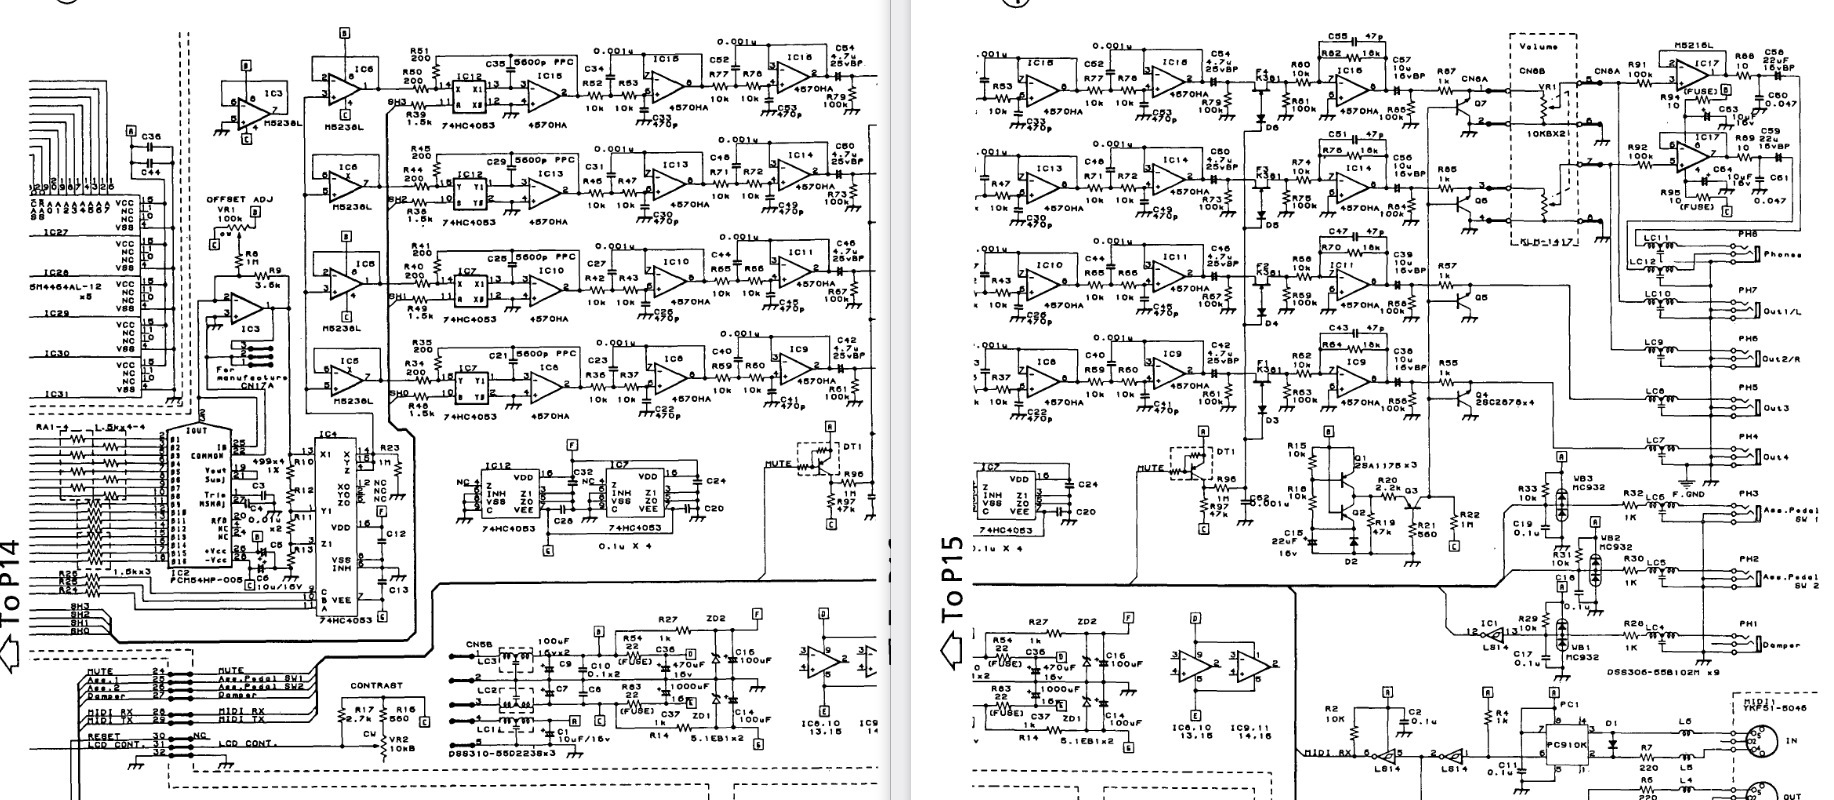 D/A (DAC) Section of Korg Wavestation schematic